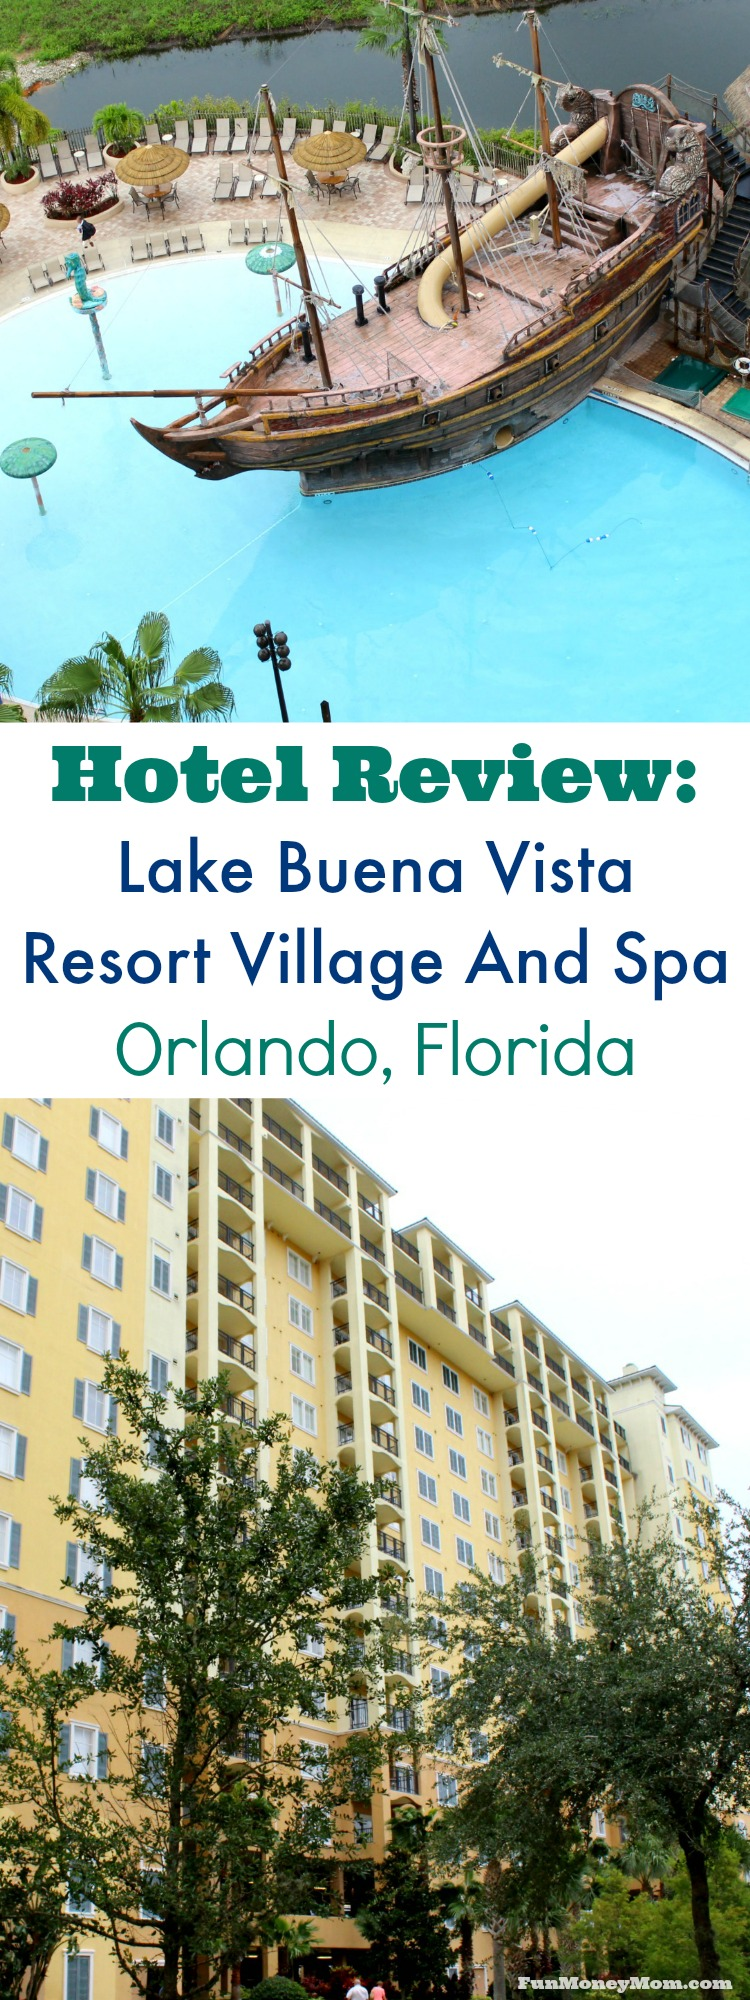 Planning an Orlando vacation? Find out why the Lake Buena Vista Resort Village And Spa is an Orlando hotel worth checking out!